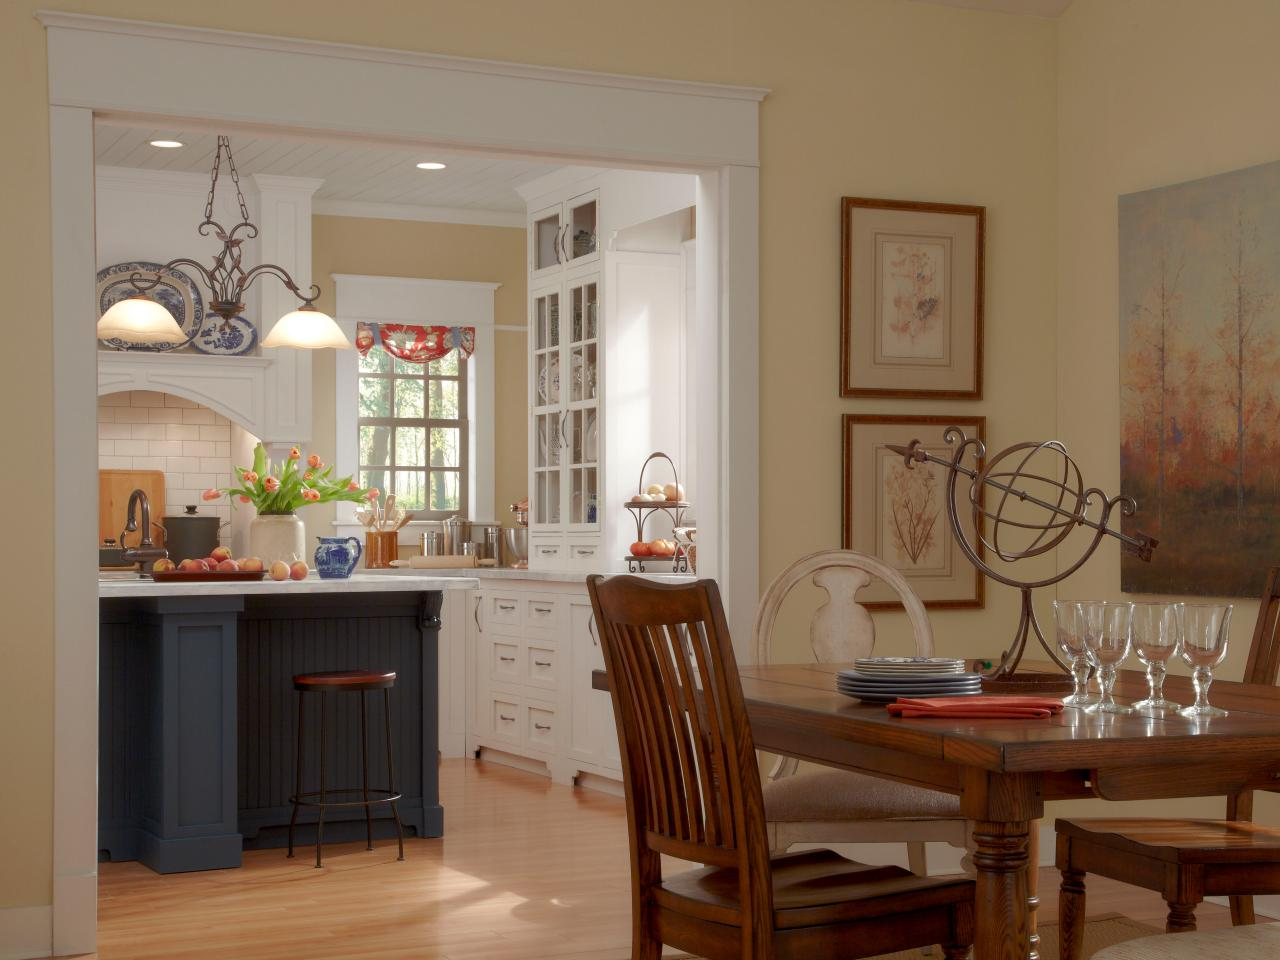 Moulding Trim Molding And Trim Make An Impact Hgtv